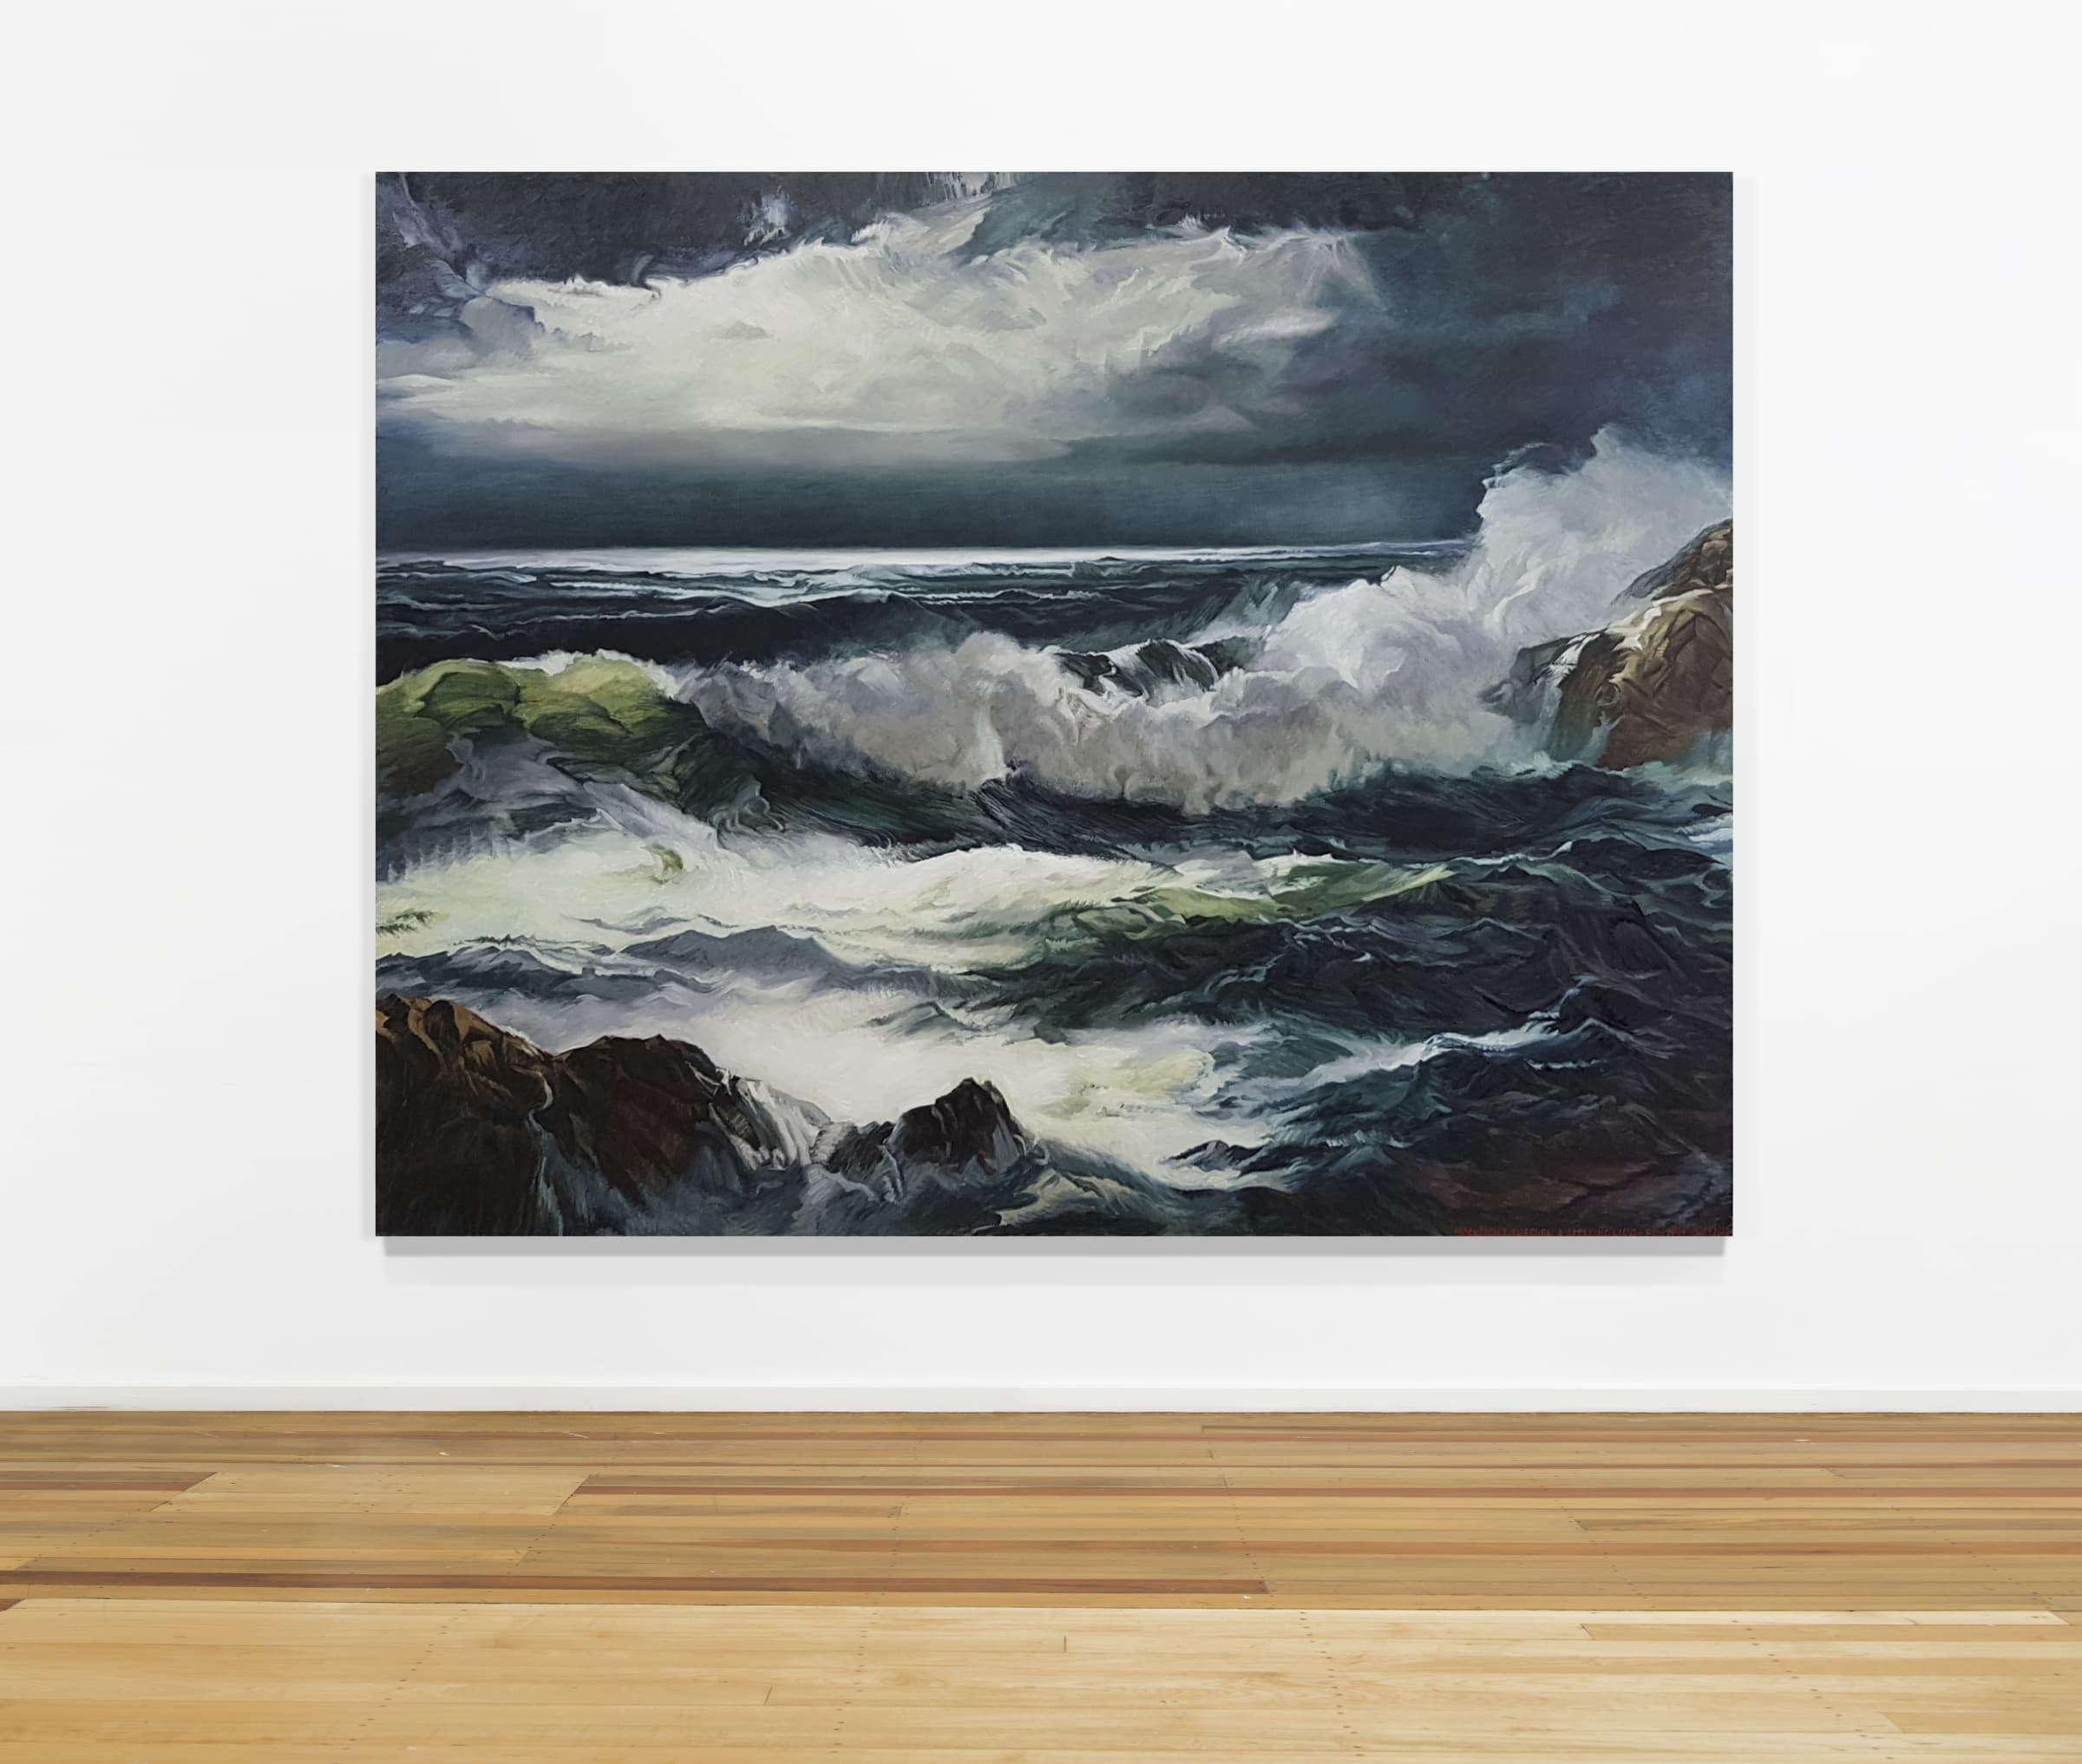 """<span class=""""link fancybox-details-link""""><a href=""""/artists/45-dick-frizzell/works/7194-dick-frizzell-moonlight-through-a-breaking-wave-2016/"""">View Detail Page</a></span><div class=""""artist""""><strong>Dick FRIZZELL</strong></div> <div class=""""title""""><em>Moonlight Through A Breaking Wave</em>, 2016</div> <div class=""""medium"""">Oil on canvas</div> <div class=""""dimensions"""">70.9 x 90.6 in<br />180 x 230 cm</div>"""